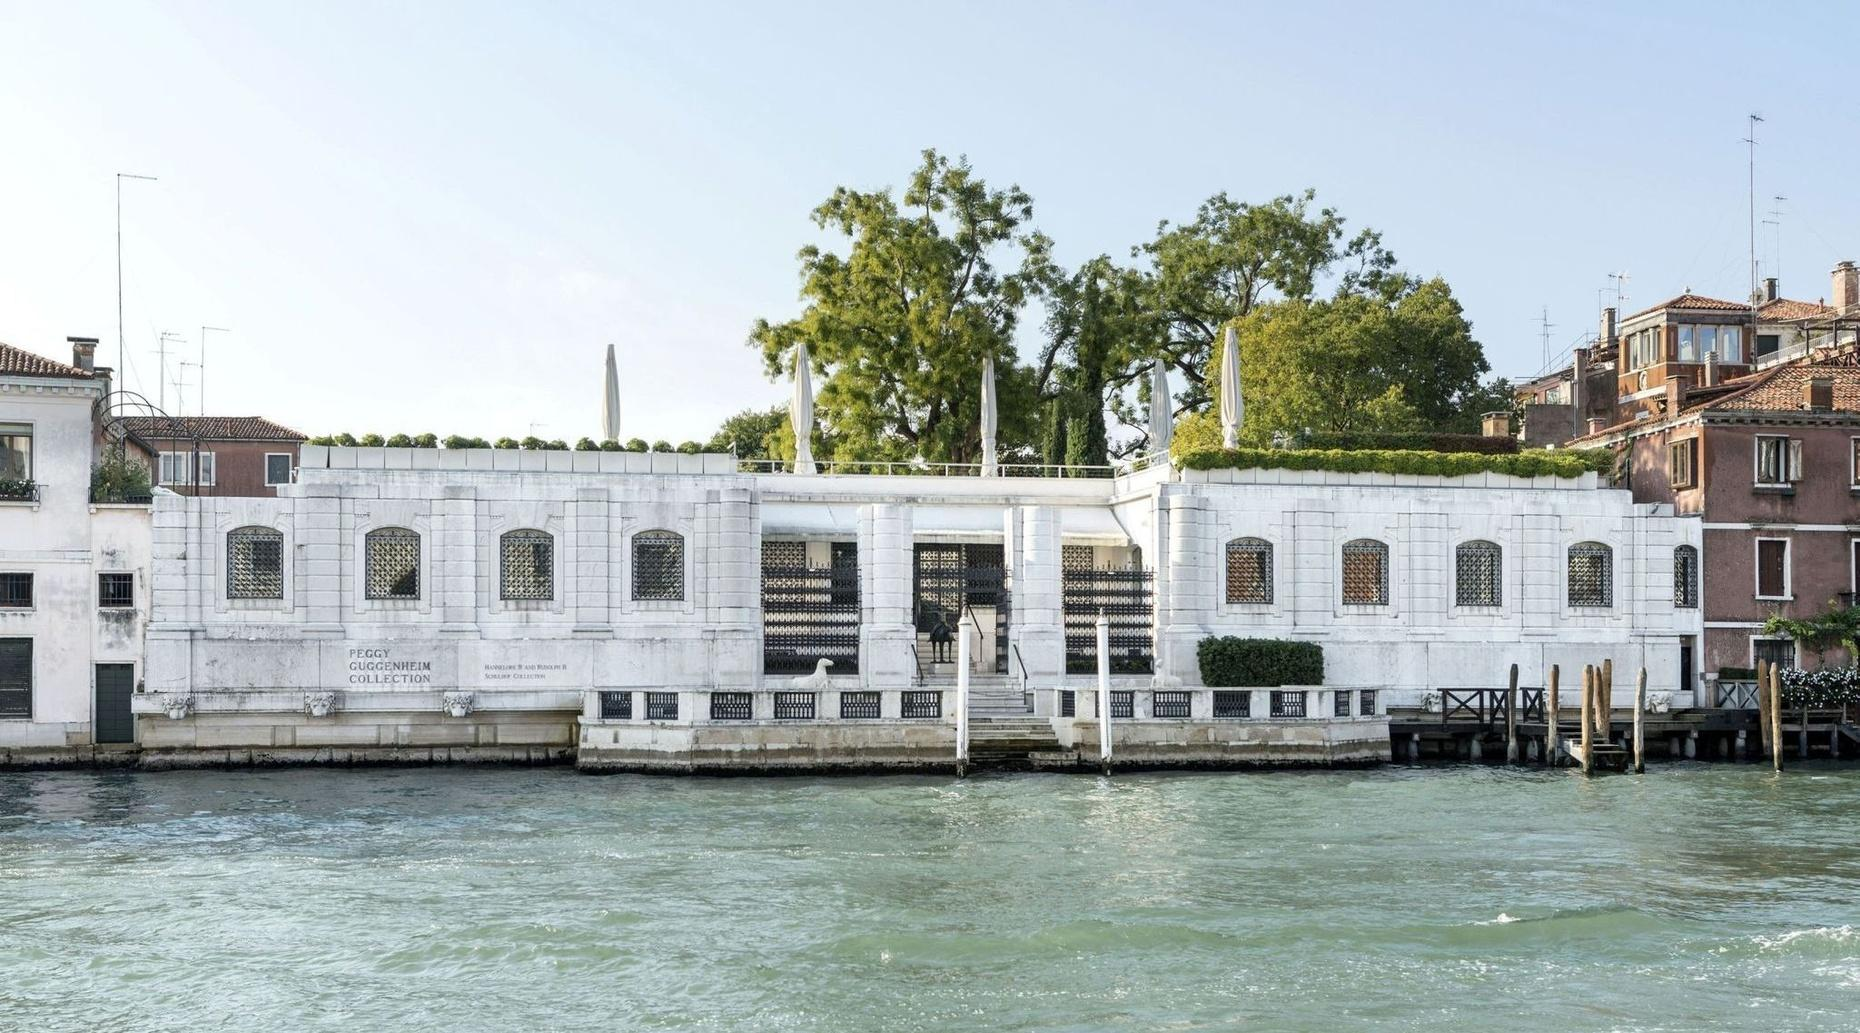 Visit the Peggy Guggenheim Collection